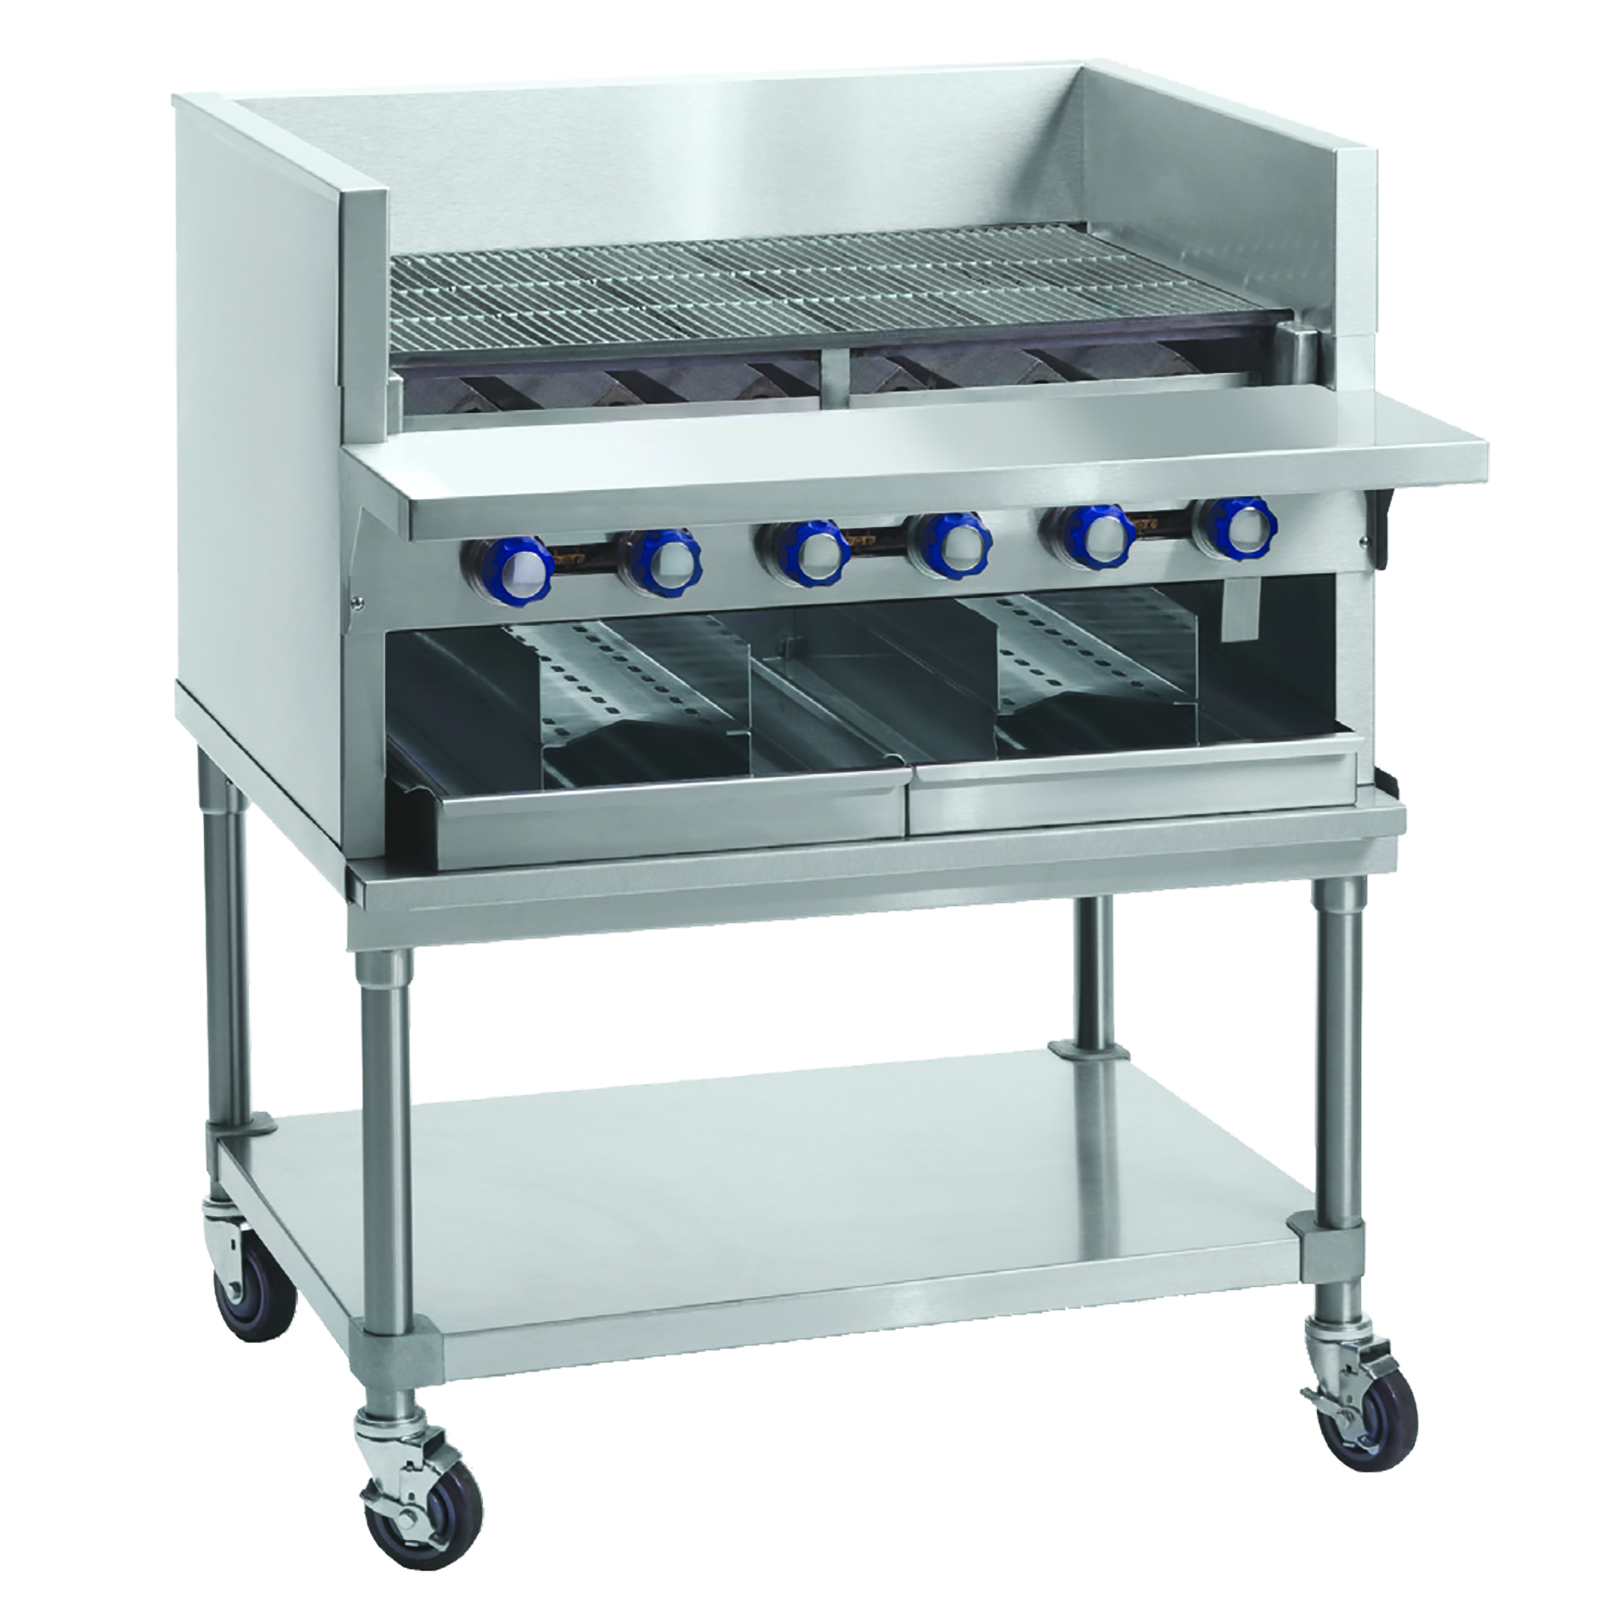 Imperial IABA-48 charbroiler, gas, countertop